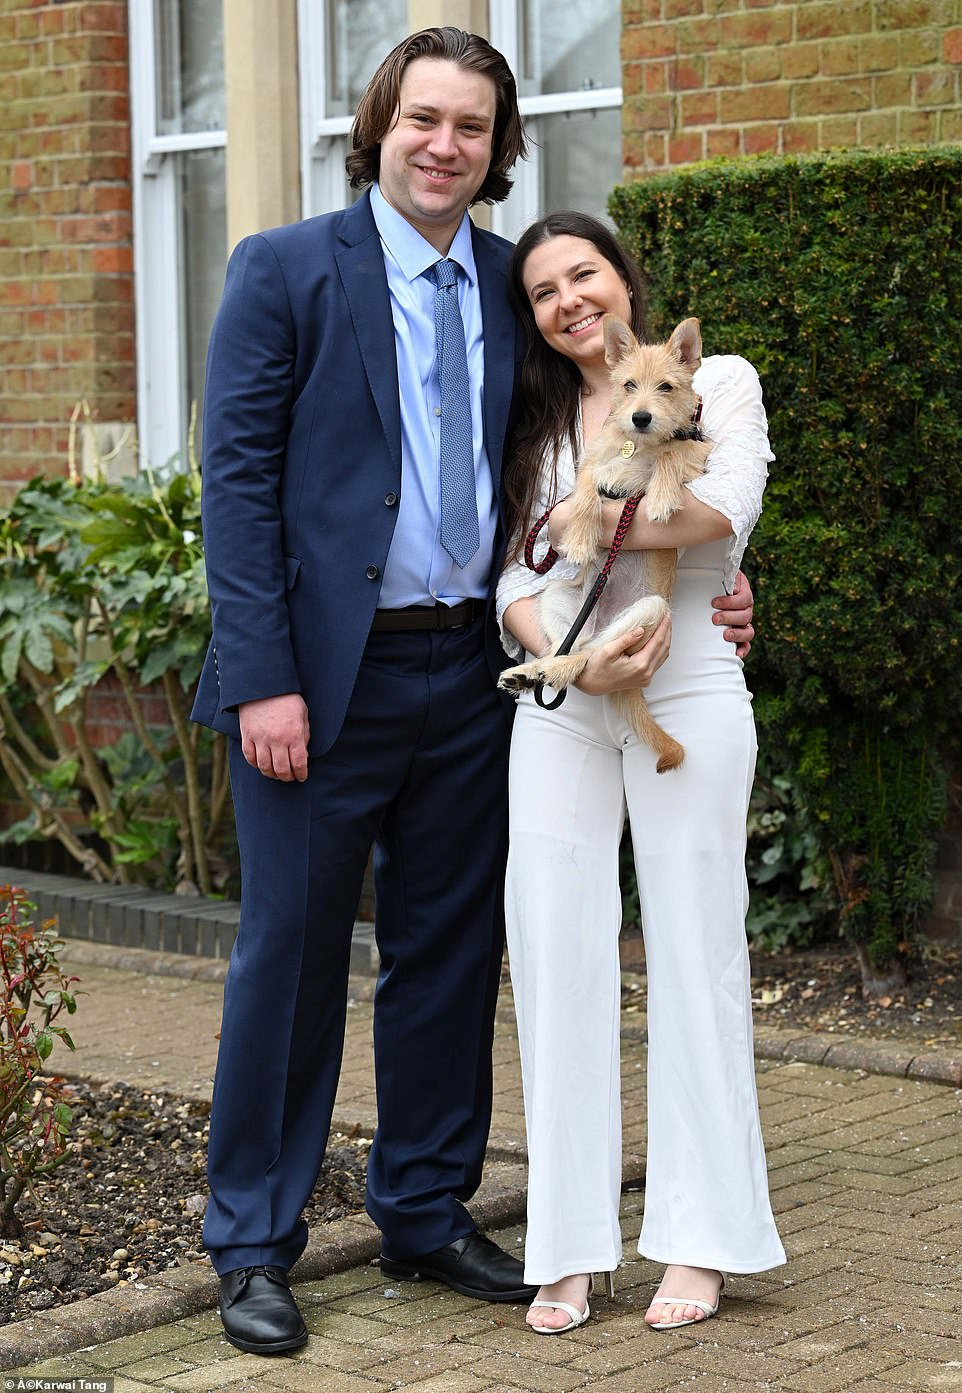 Ben and Gabriela Lloyd are the first couple to get married at St Albans Registry Office after the relaxation of the lockdown rule in the UK